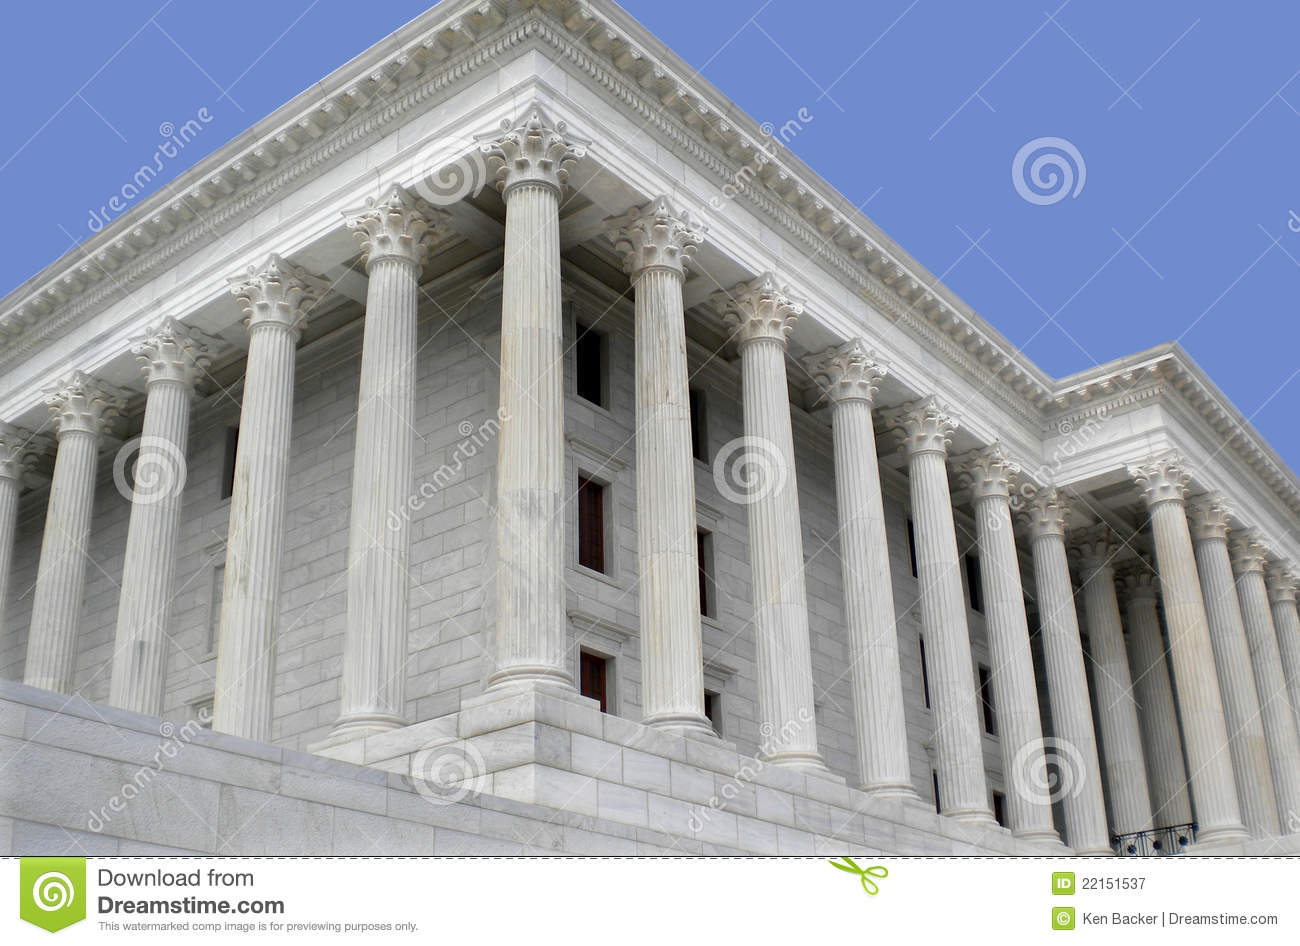 Building A House On Pillars : Marble building with pillars stock image